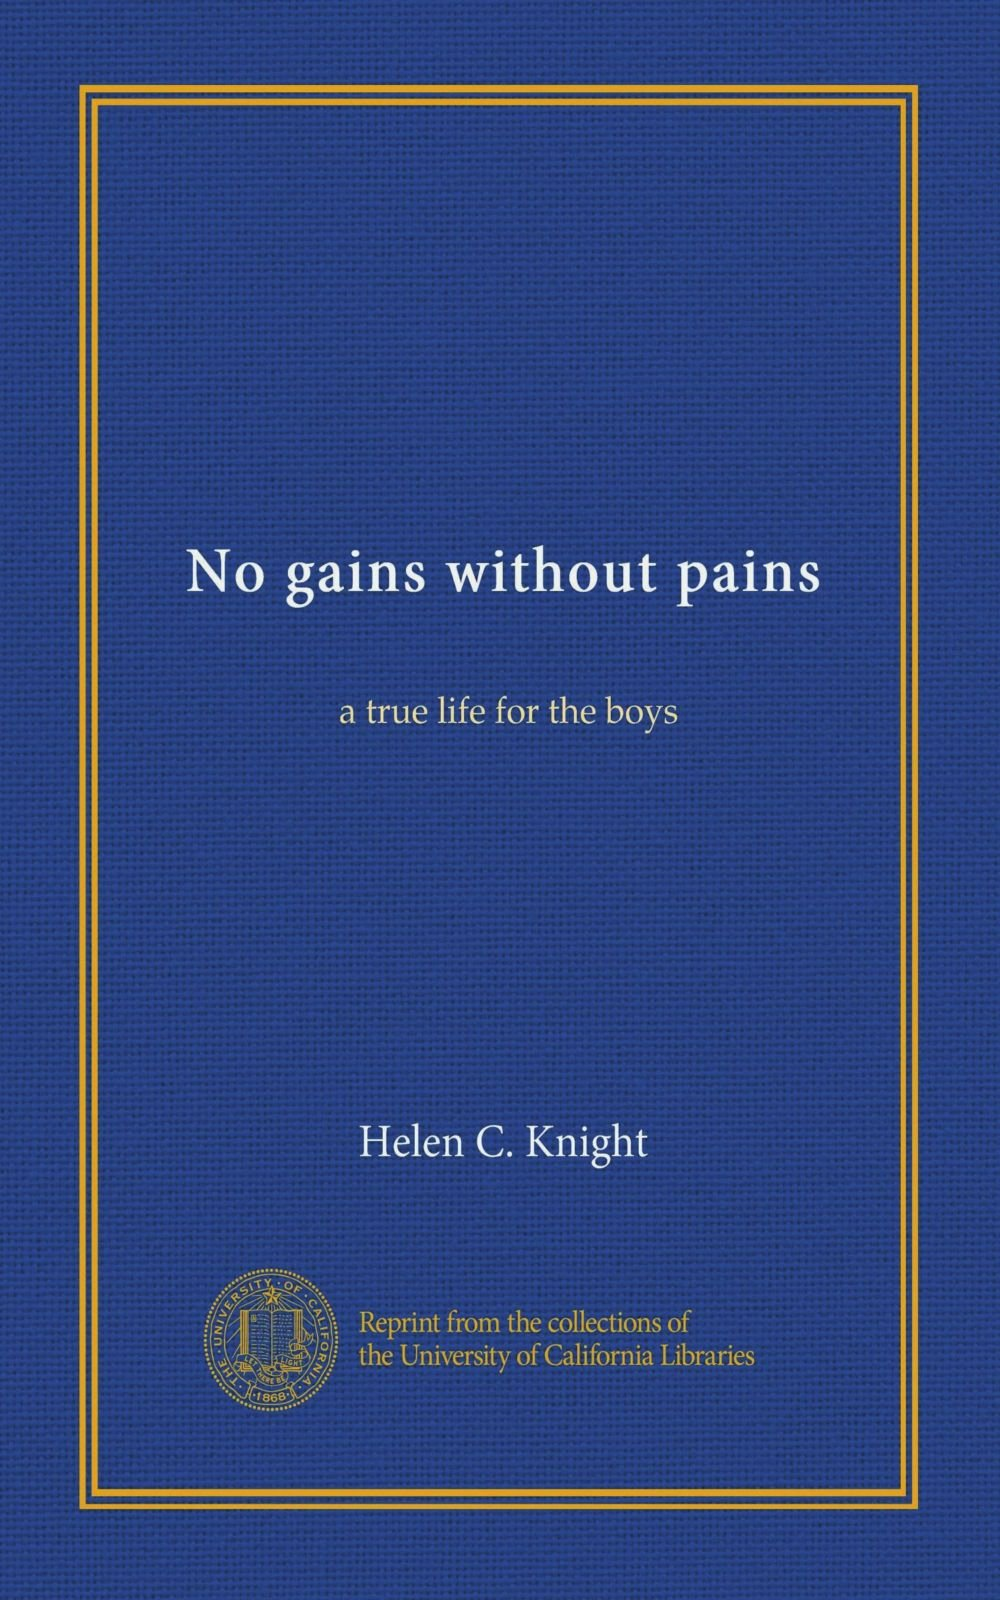 Download No gains without pains: a true life for the boys PDF